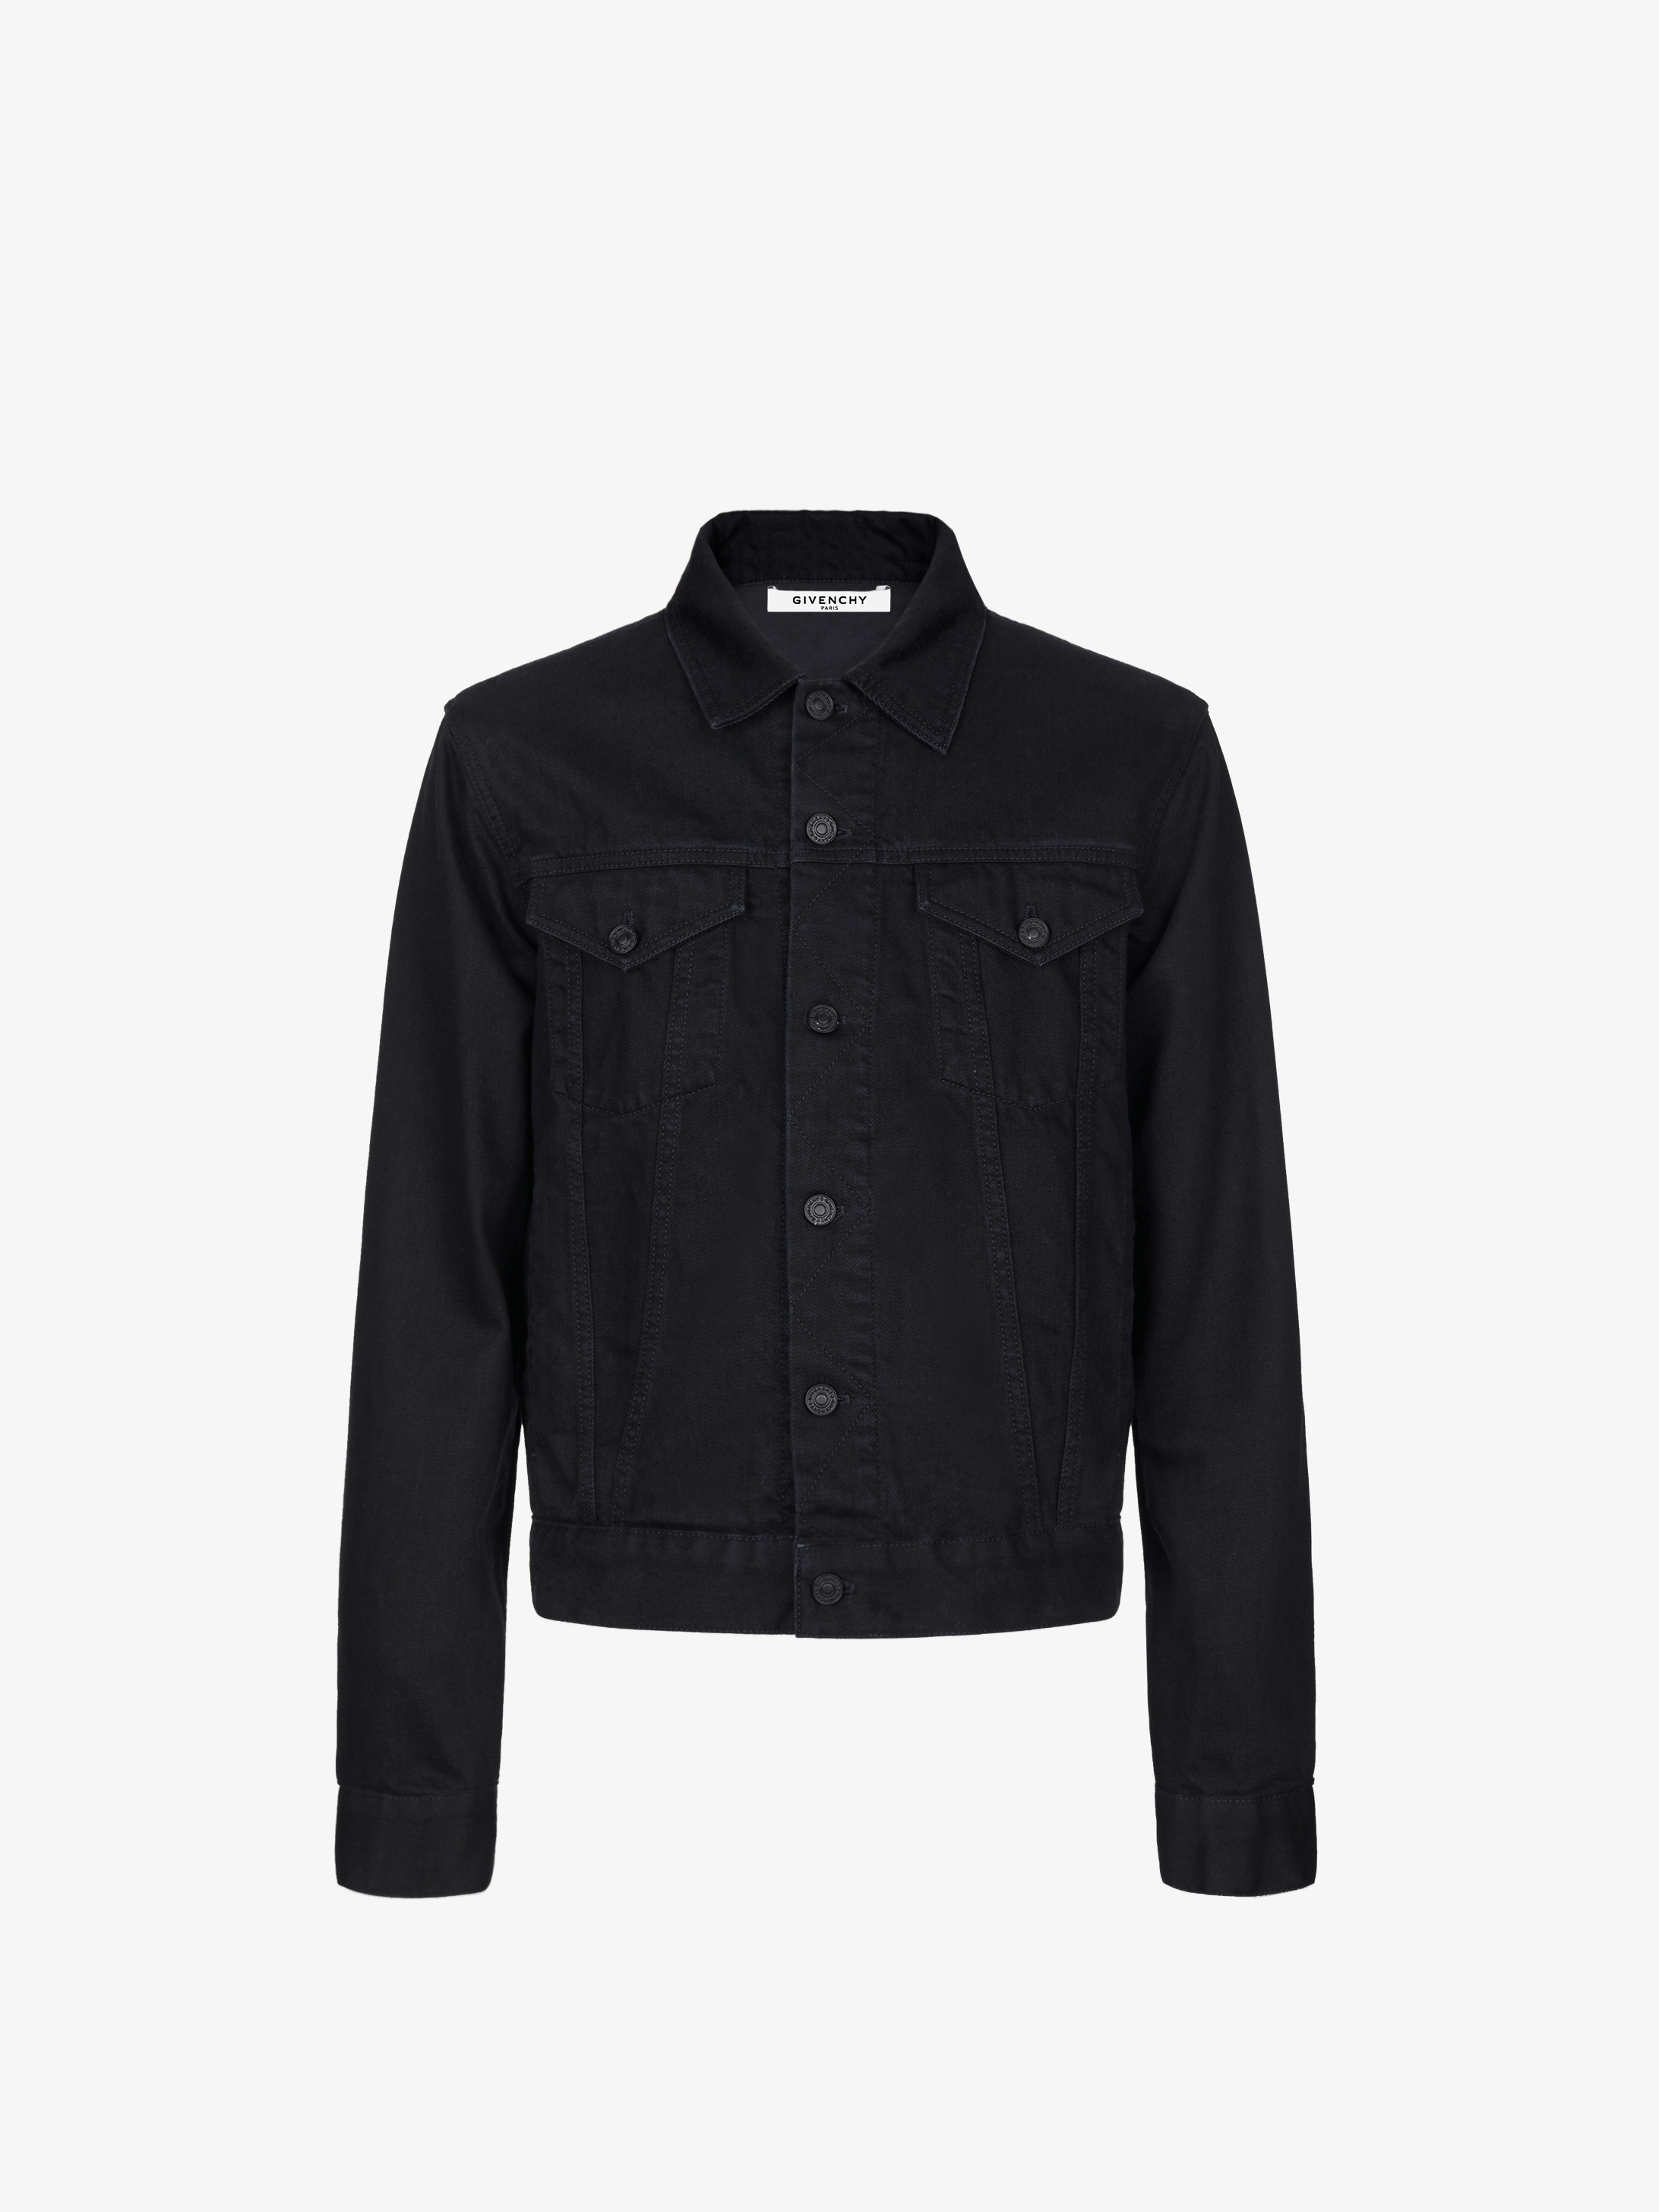 GIVENCHY casual jacket in denim